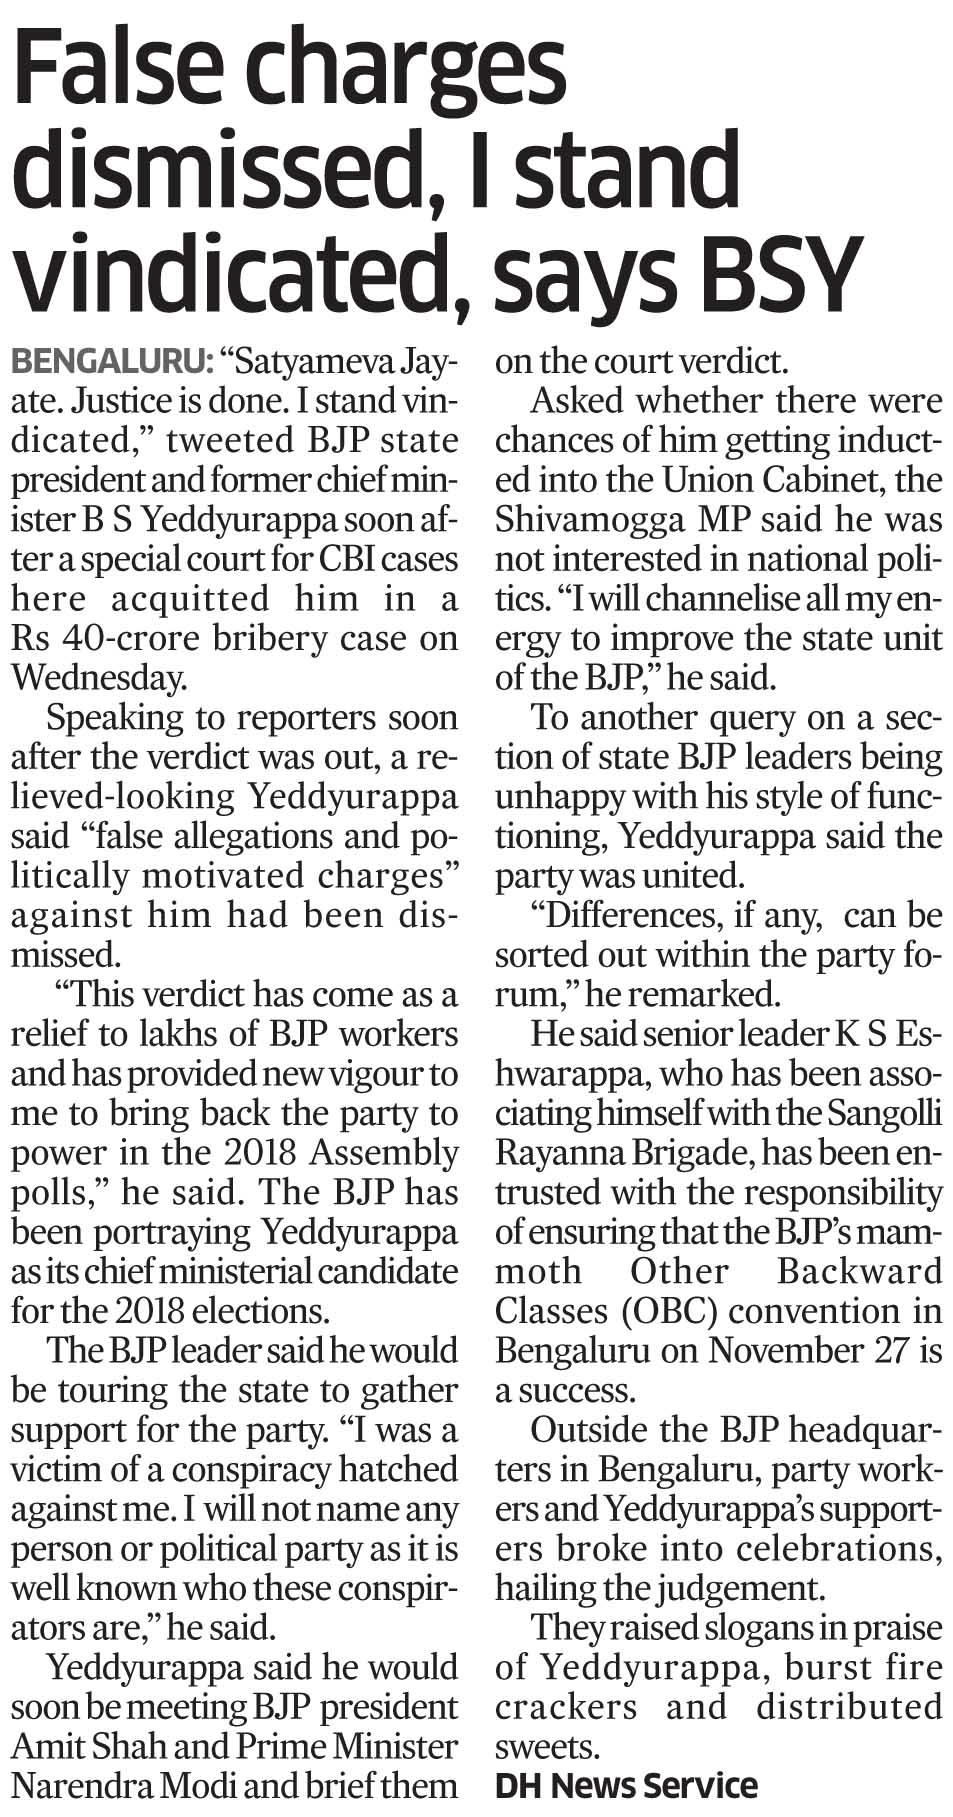 False charges dismissed, I stand vindicated, says BSY